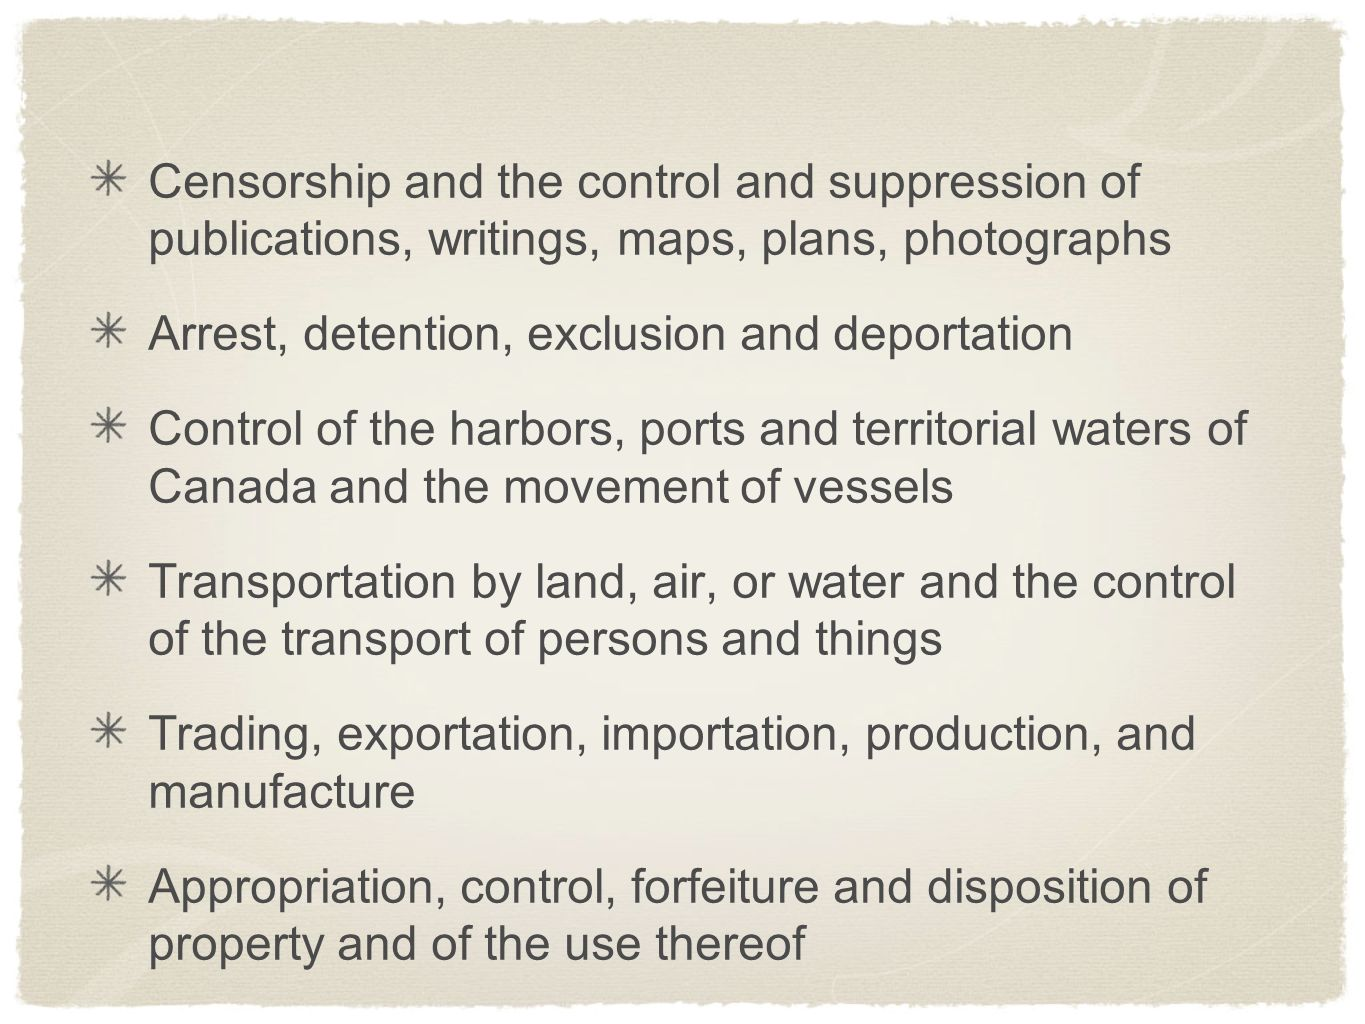 Censorship and the control and suppression of publications, writings, maps, plans, photographs